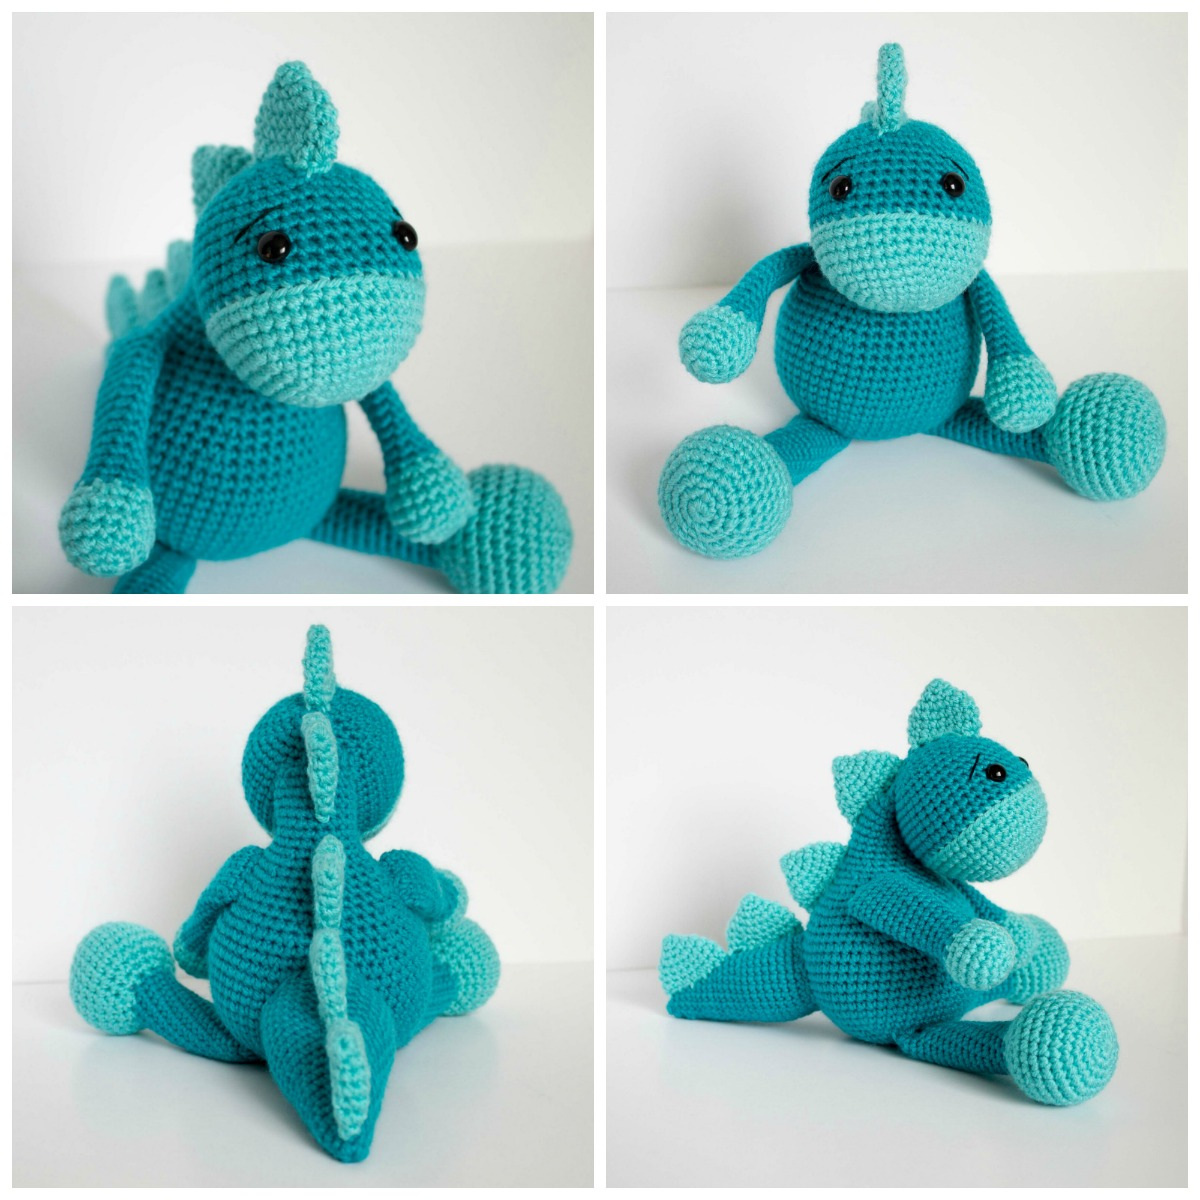 20+ Toy Dinosaur Crochet Pattern – Pattern Giveaway! - A More ... | 1200x1200